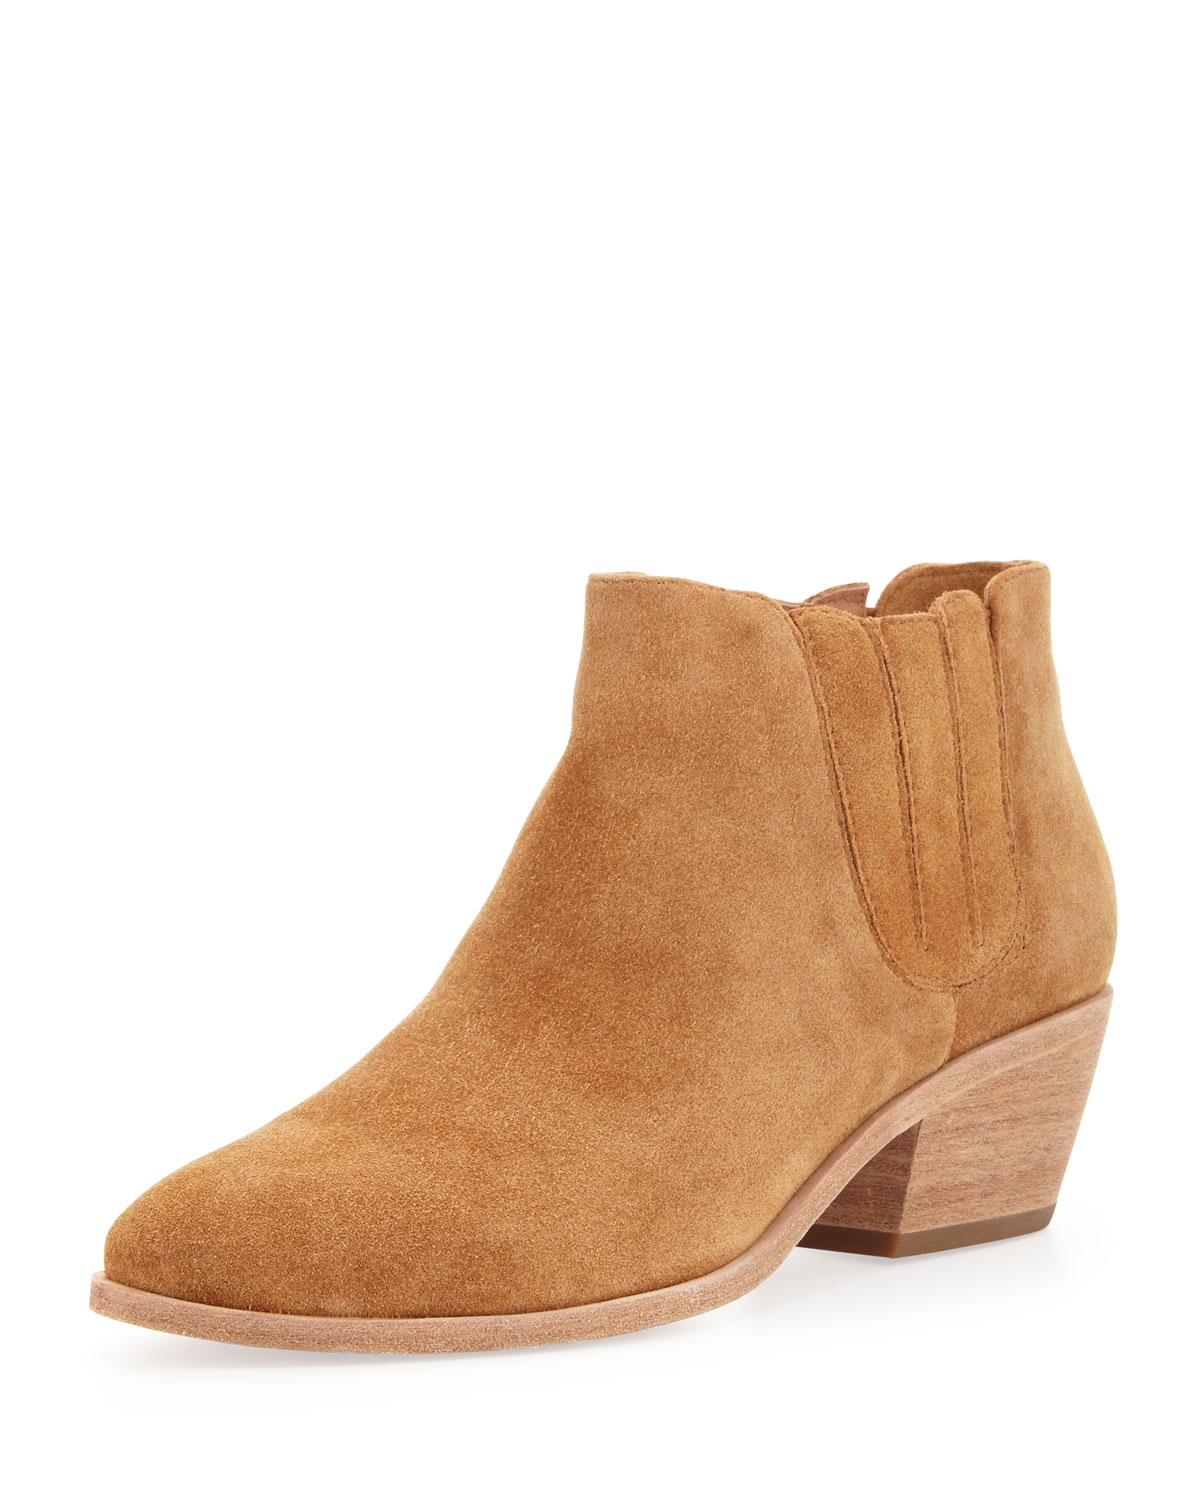 joie barlow suede stretch ankle boot in brown cognac lyst